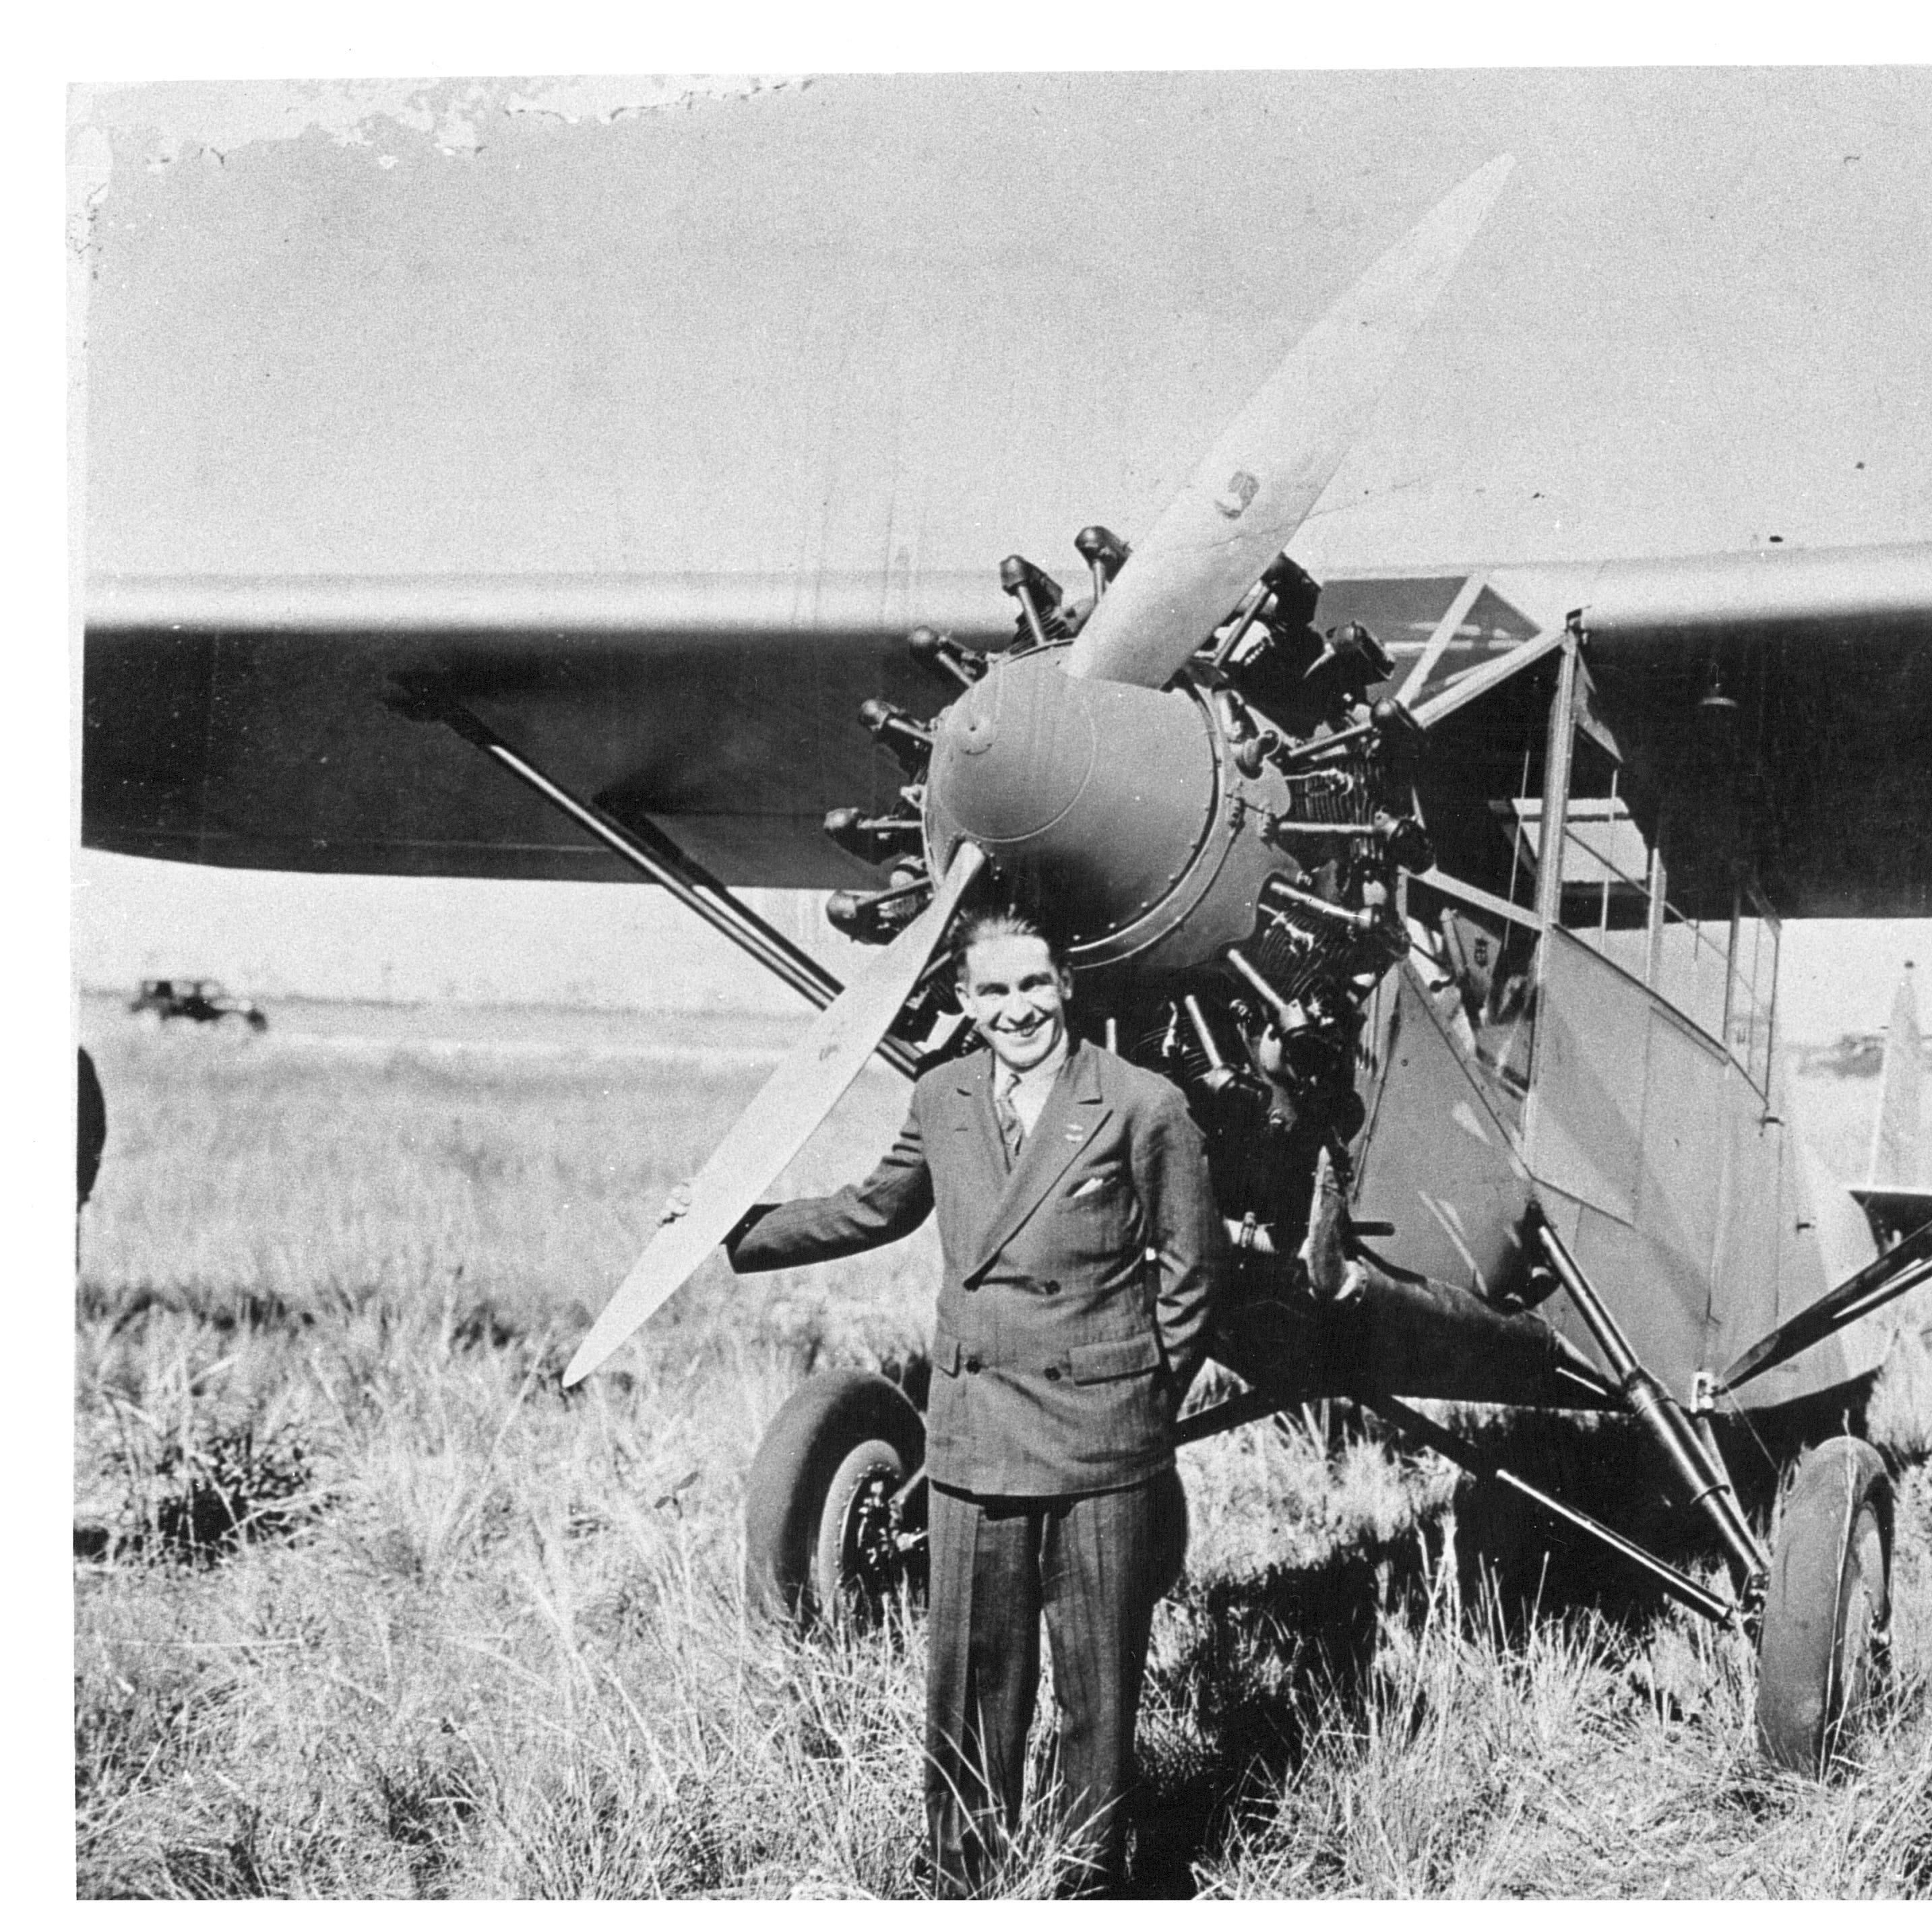 0369 aviator captain george w. haldeman zkjhta